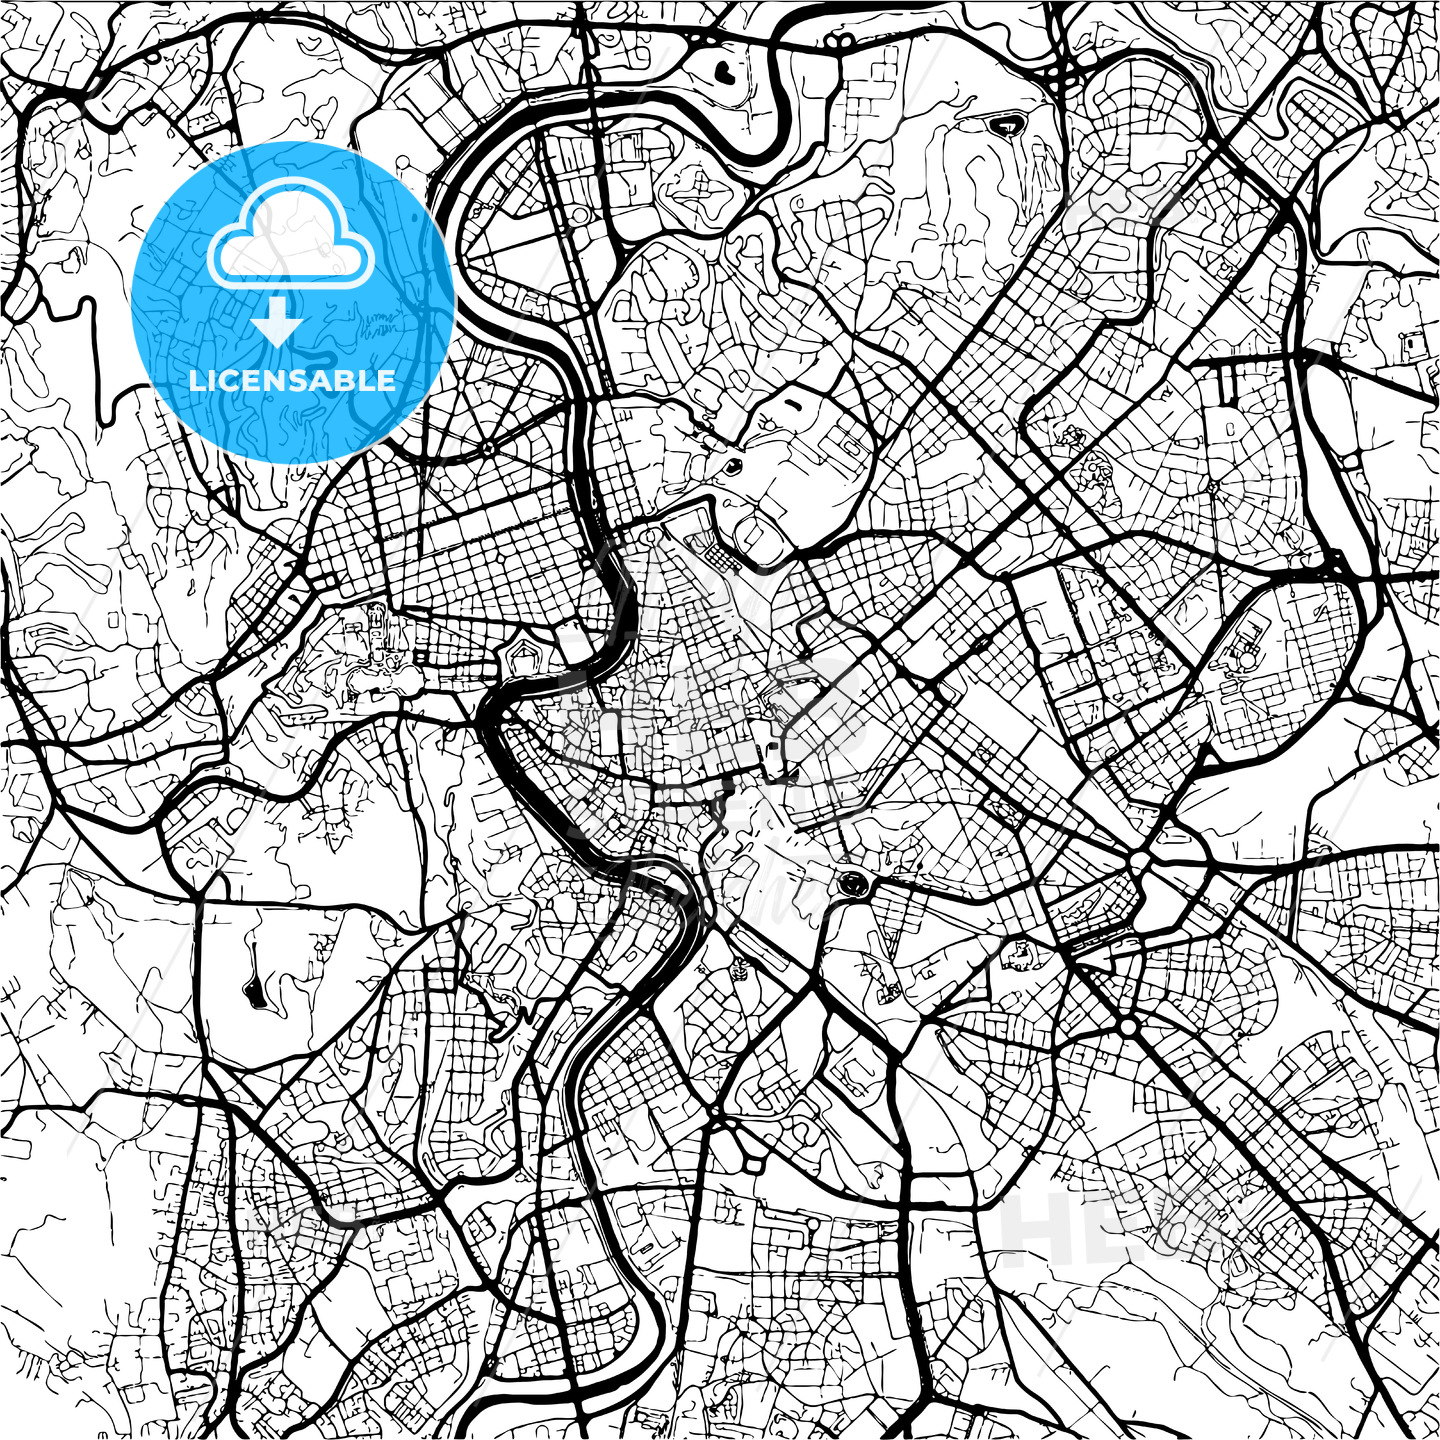 Rome, Italy, Monochrome Map Artprint - HEBSTREIT's Sketches